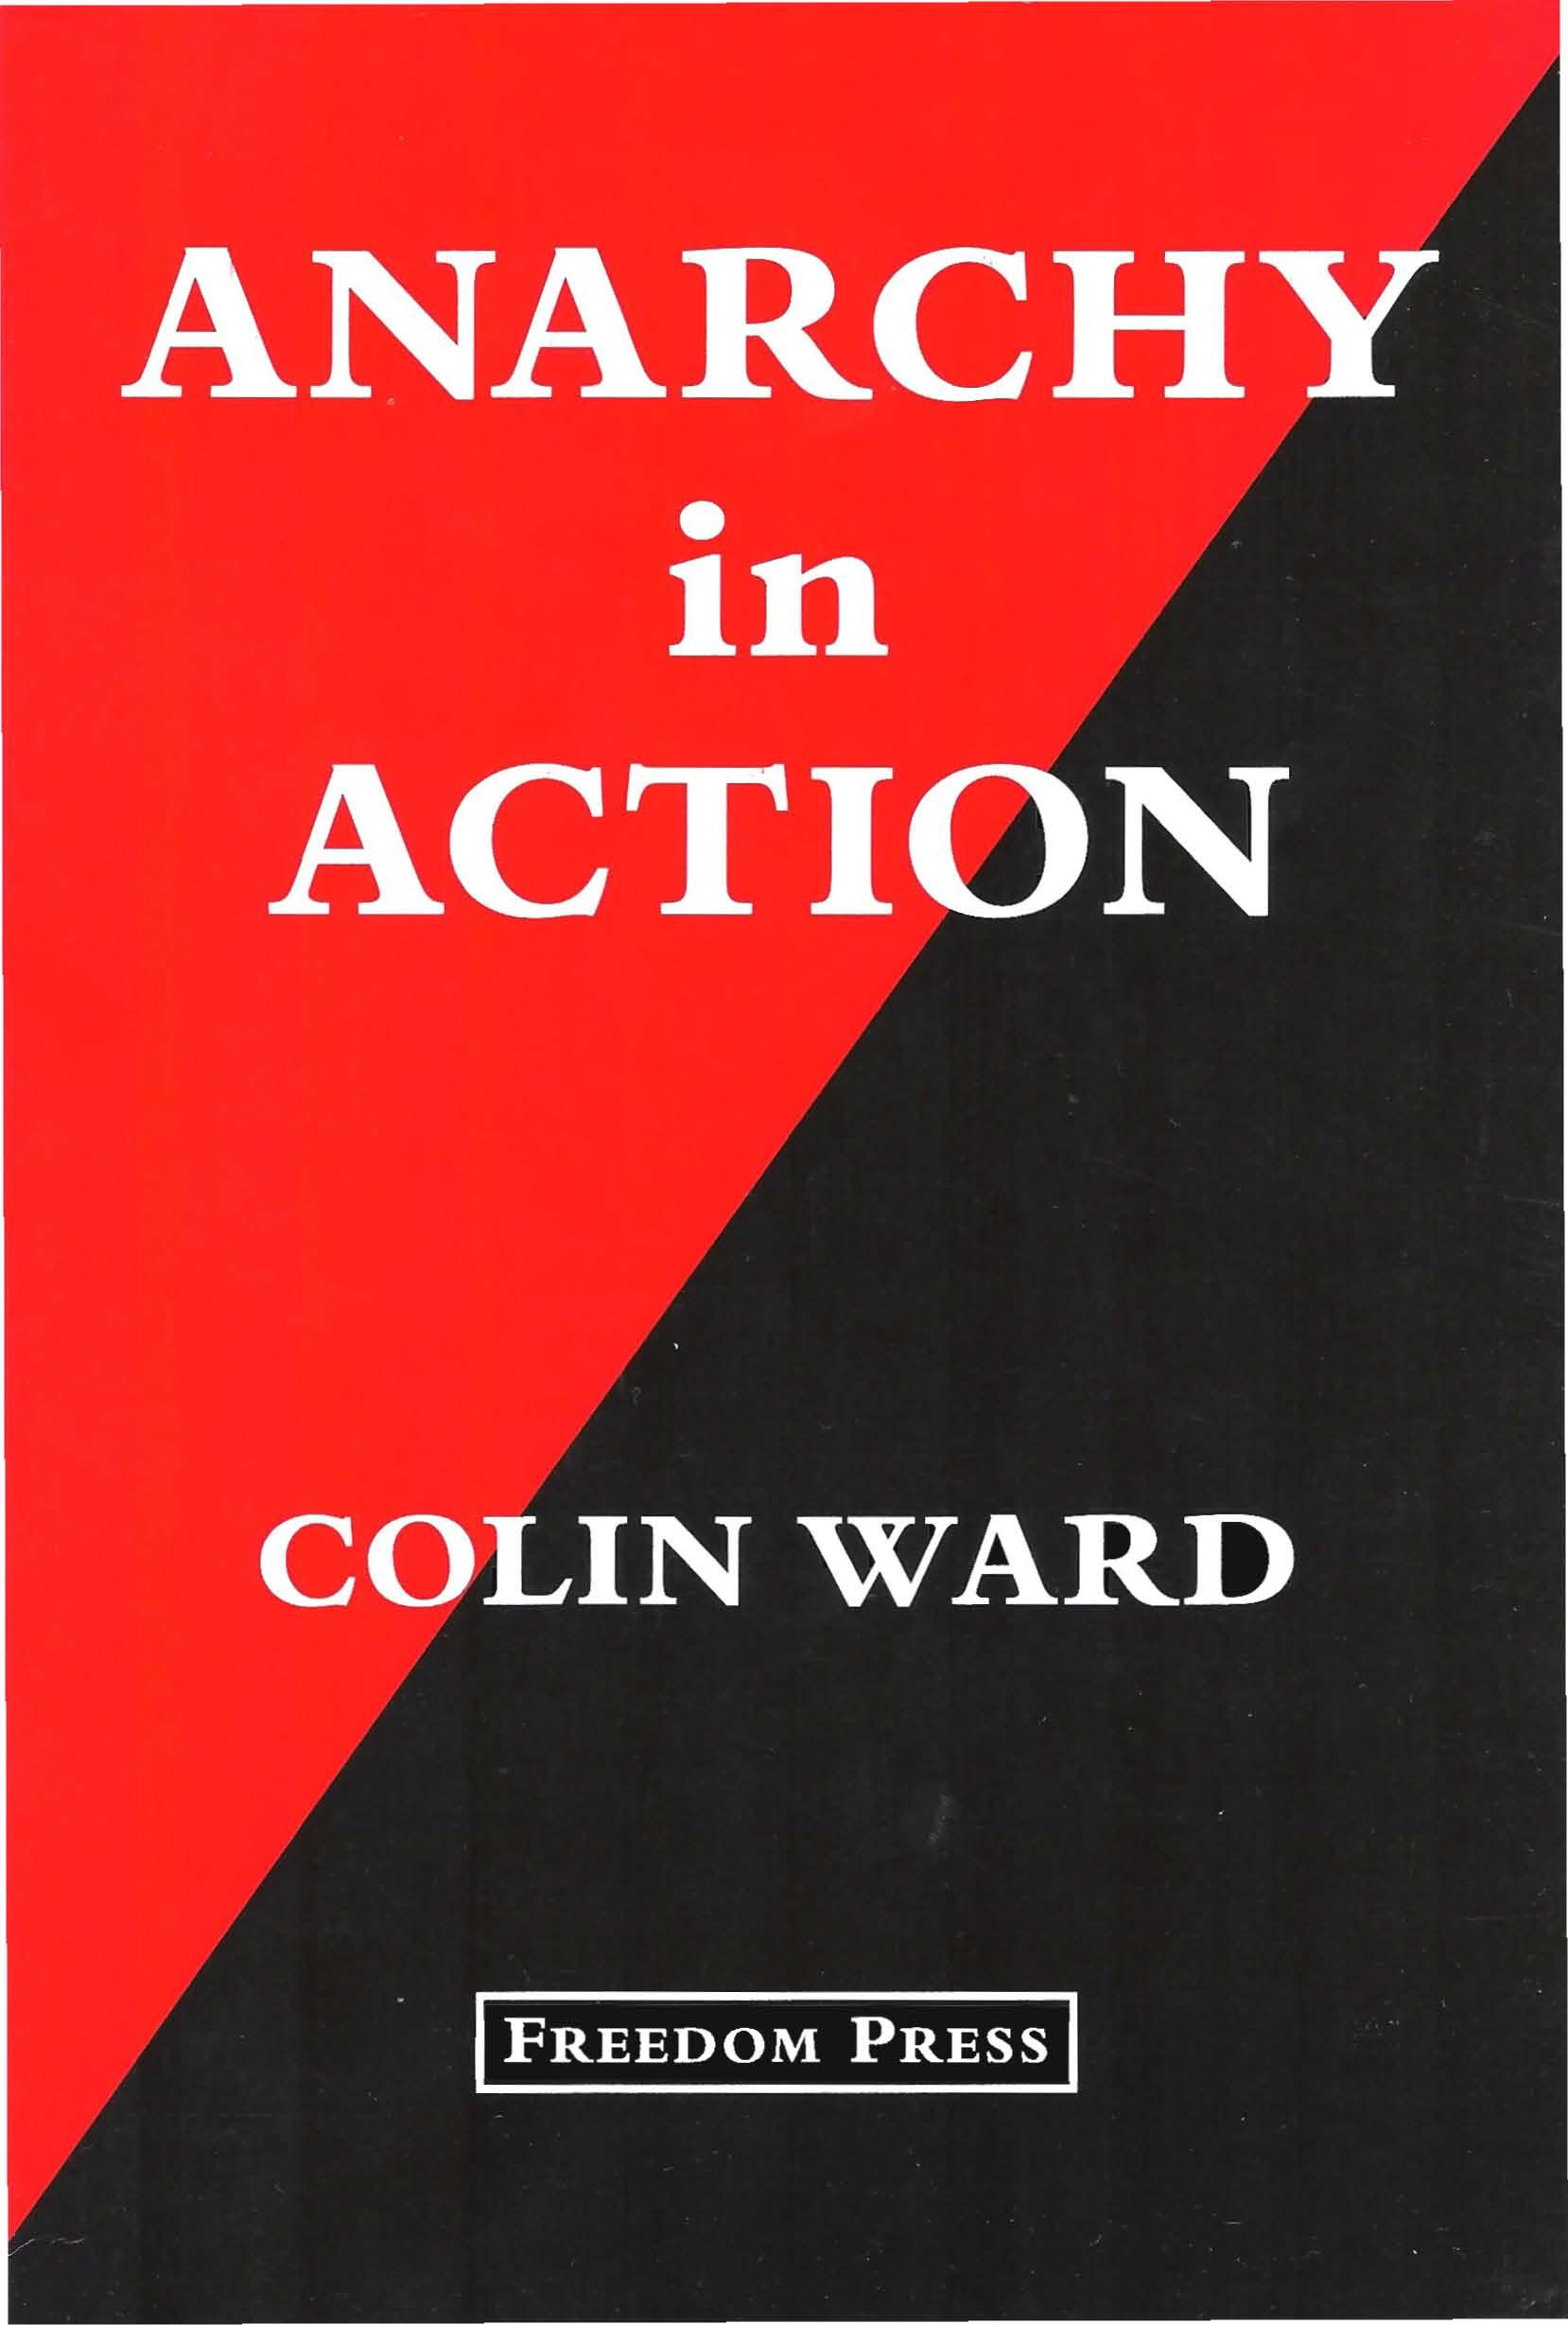 c-w-colin-ward-anarchy-in-action-1.jpg